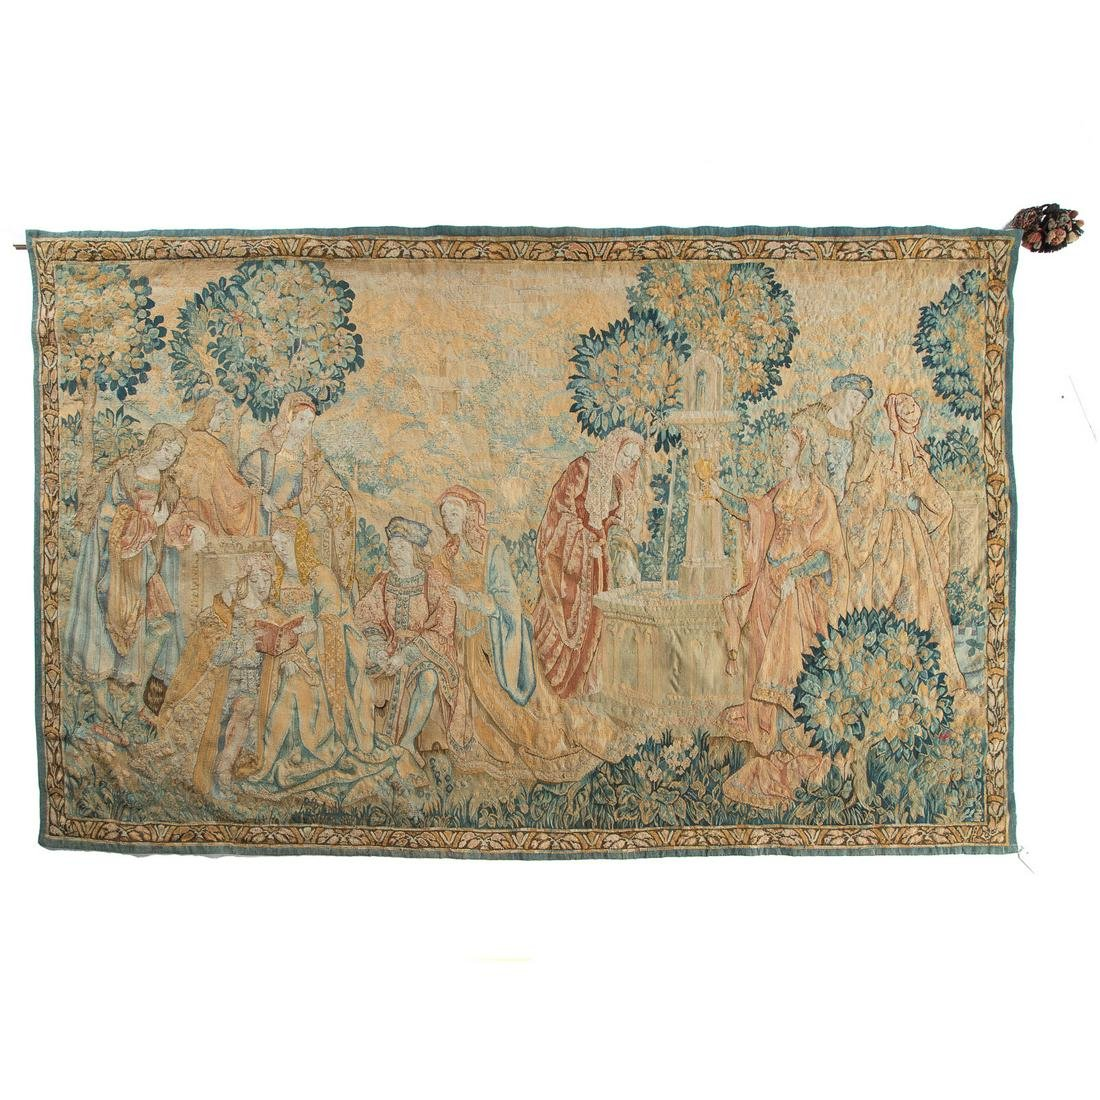 Flemish Manner Woven Tapestry